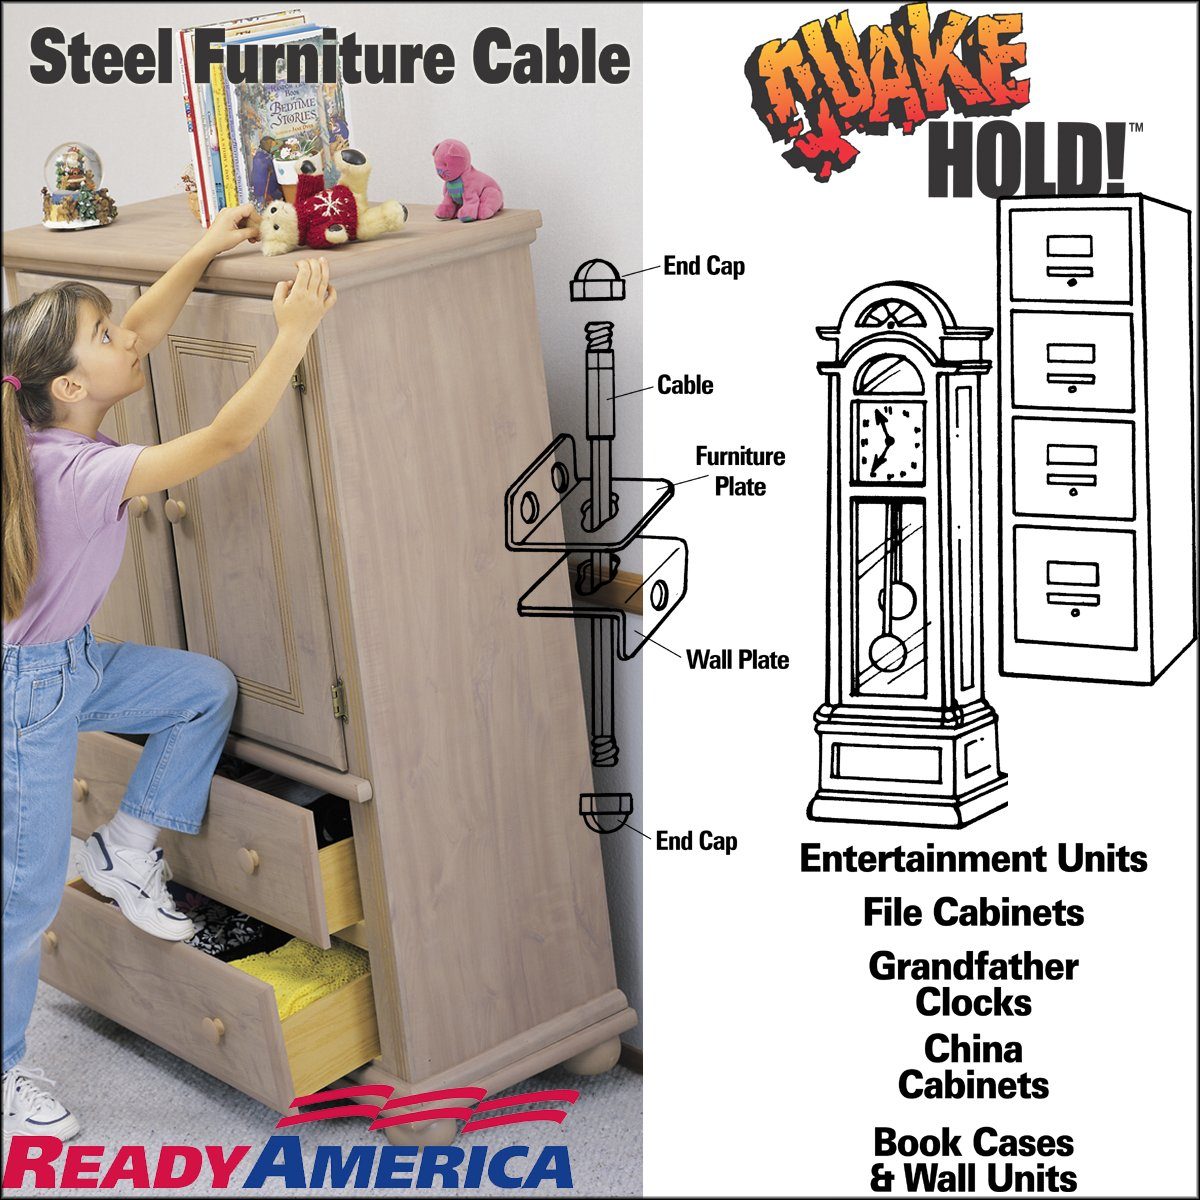 2830 7 Inch Steel Furniture Cable: READY AMERICA: Home Improvement